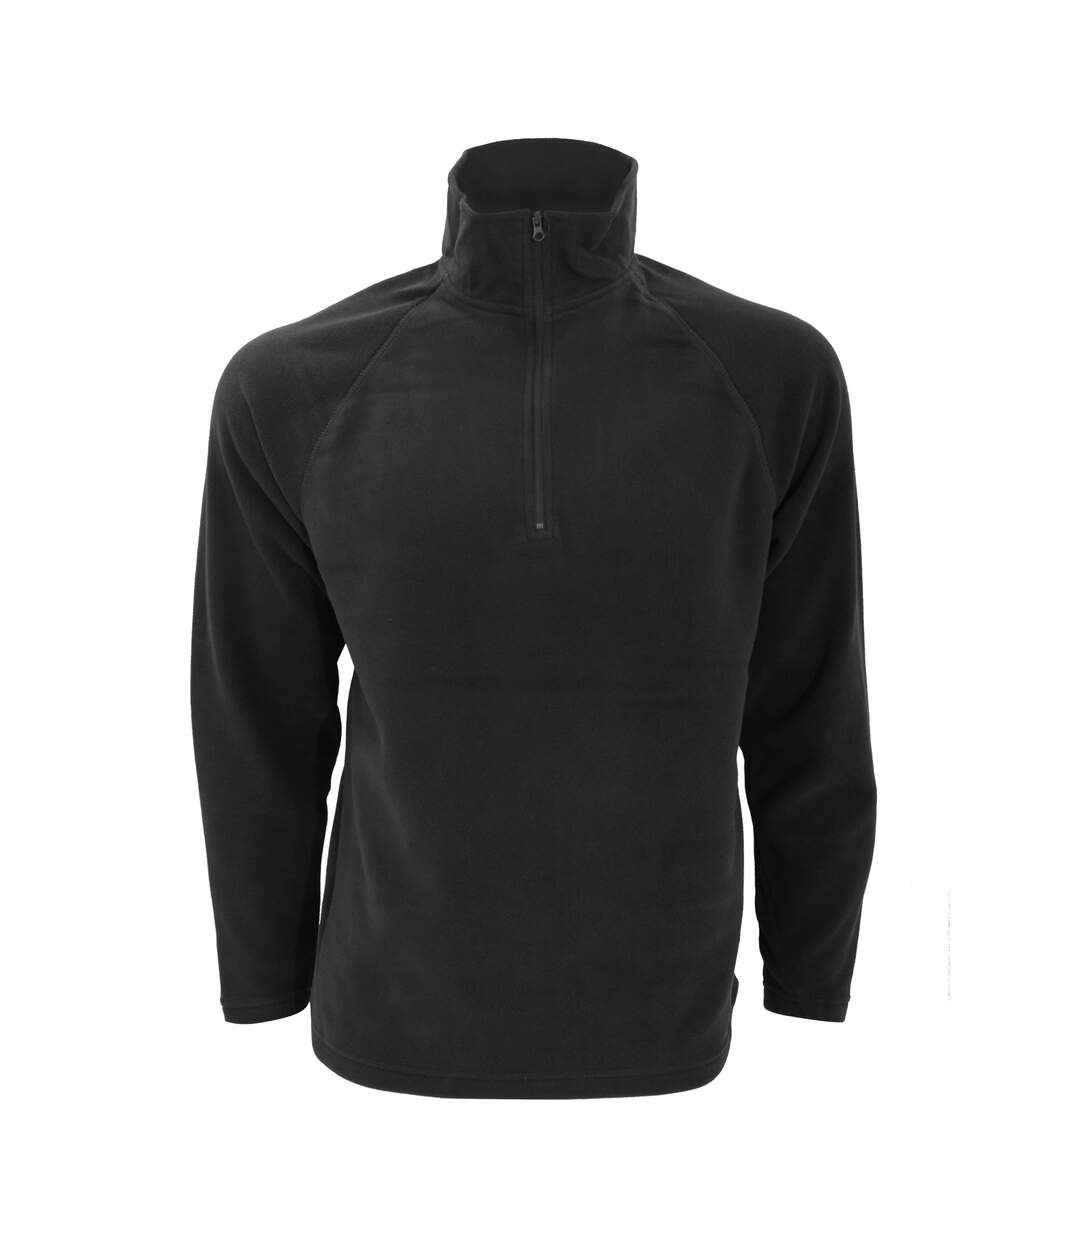 Result Mens Core Micron Anti-Pill Fleece Top (Black) - UTBC849